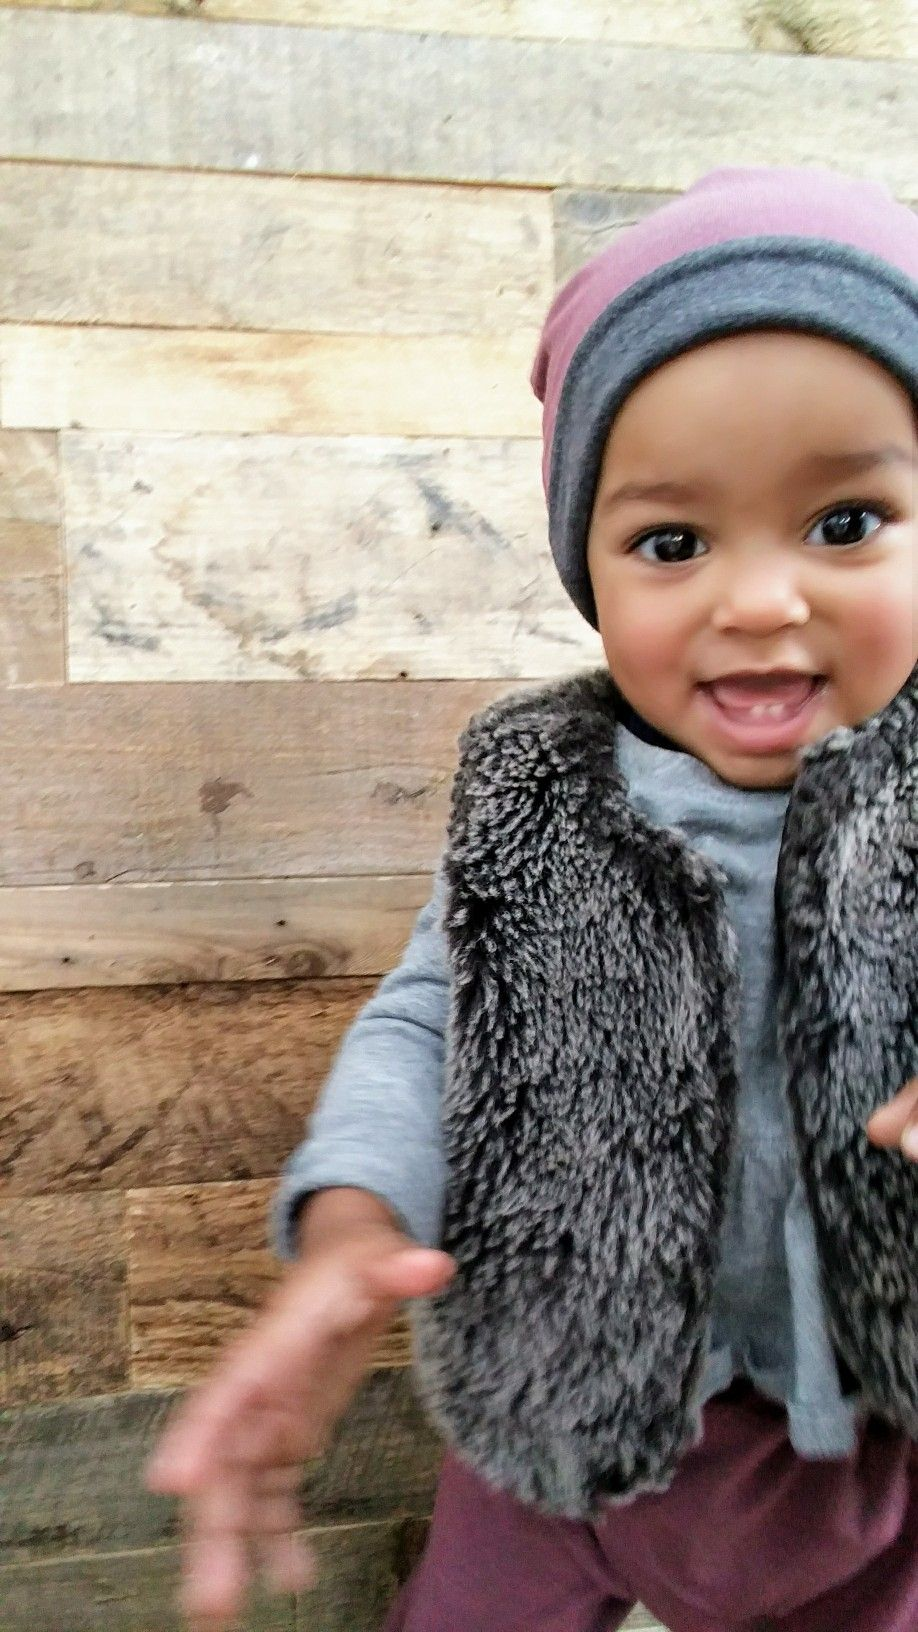 Canadian Made Baby Fashion Bamboo Baby Clothes Reversible Slouchy Hat Childrens Fashion Lil Slouchies Hats Slouchy Hat Winter Hats